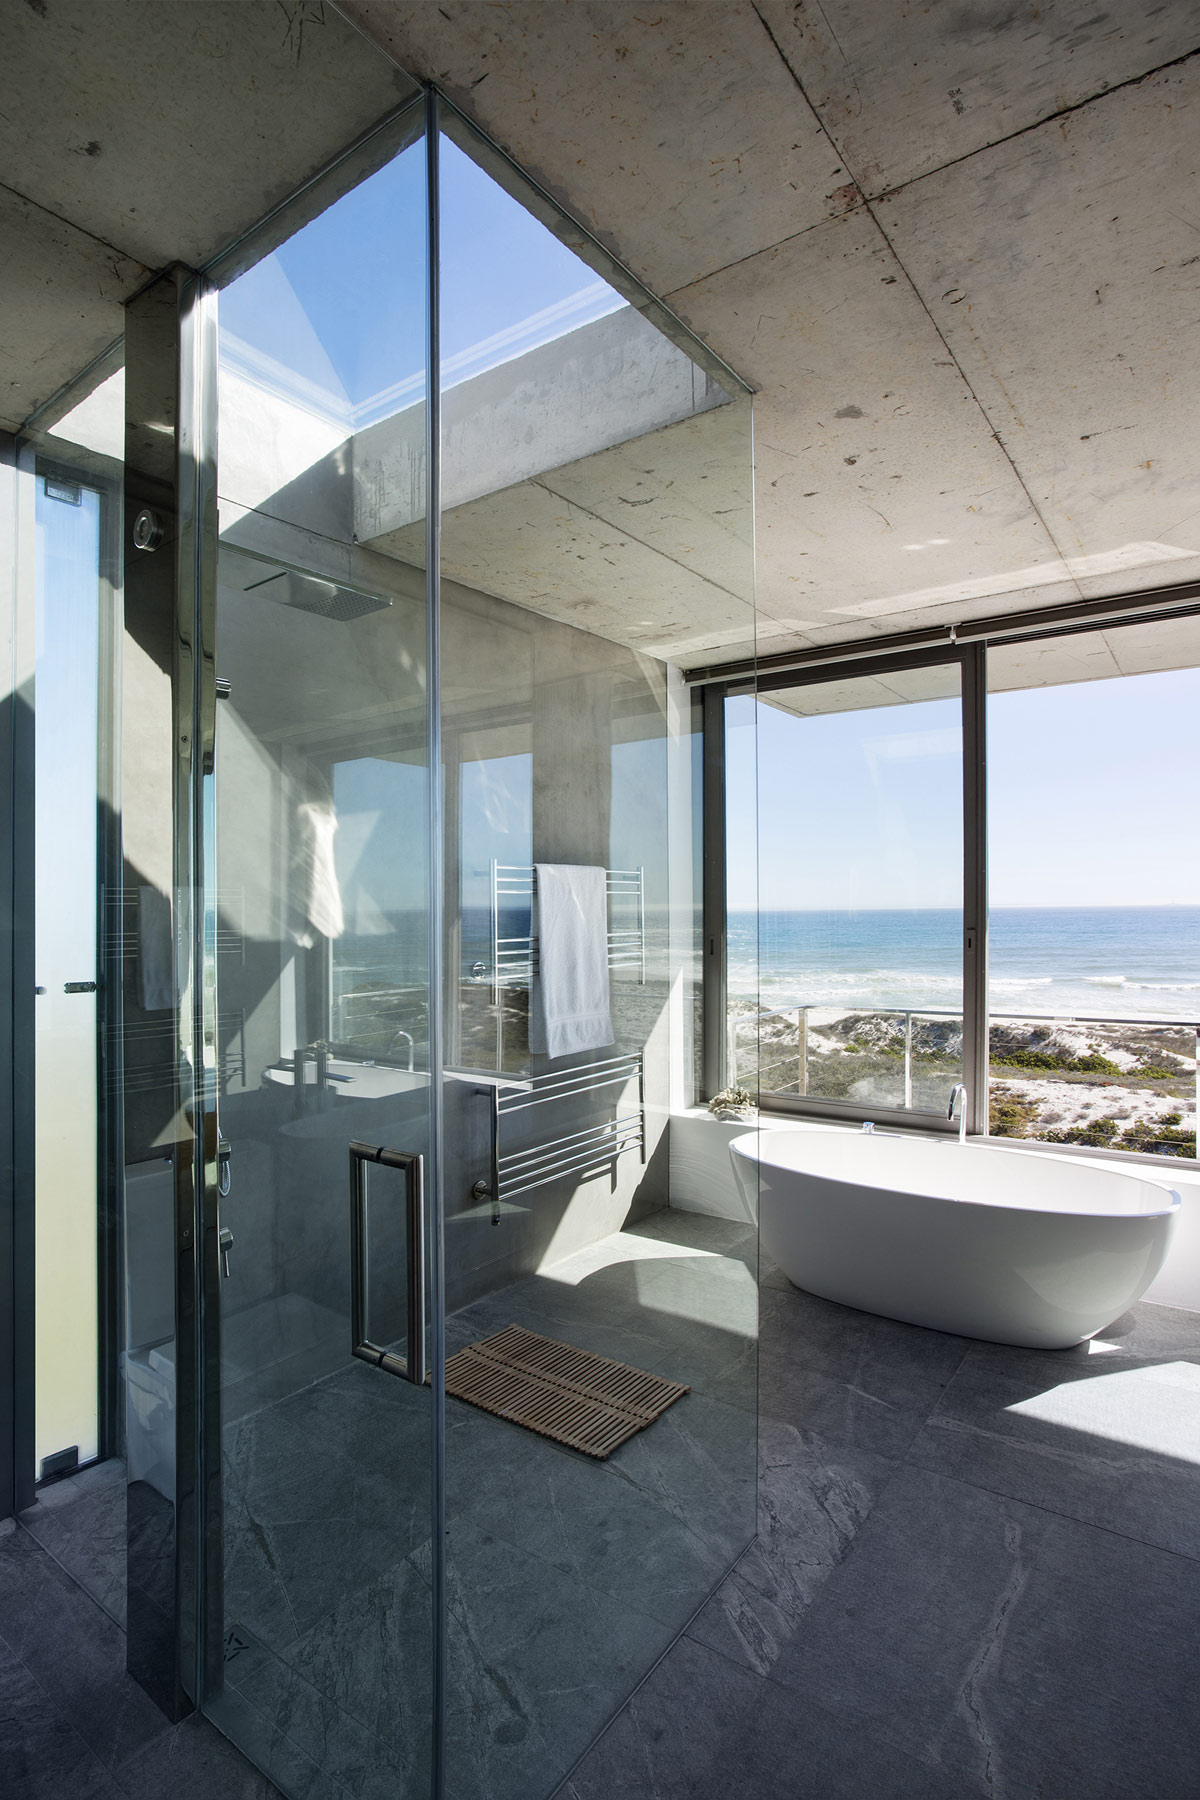 Glass Shower, Bath, Bathroom, Ocean Views, Holiday Home in Yzerfontein, South Africa